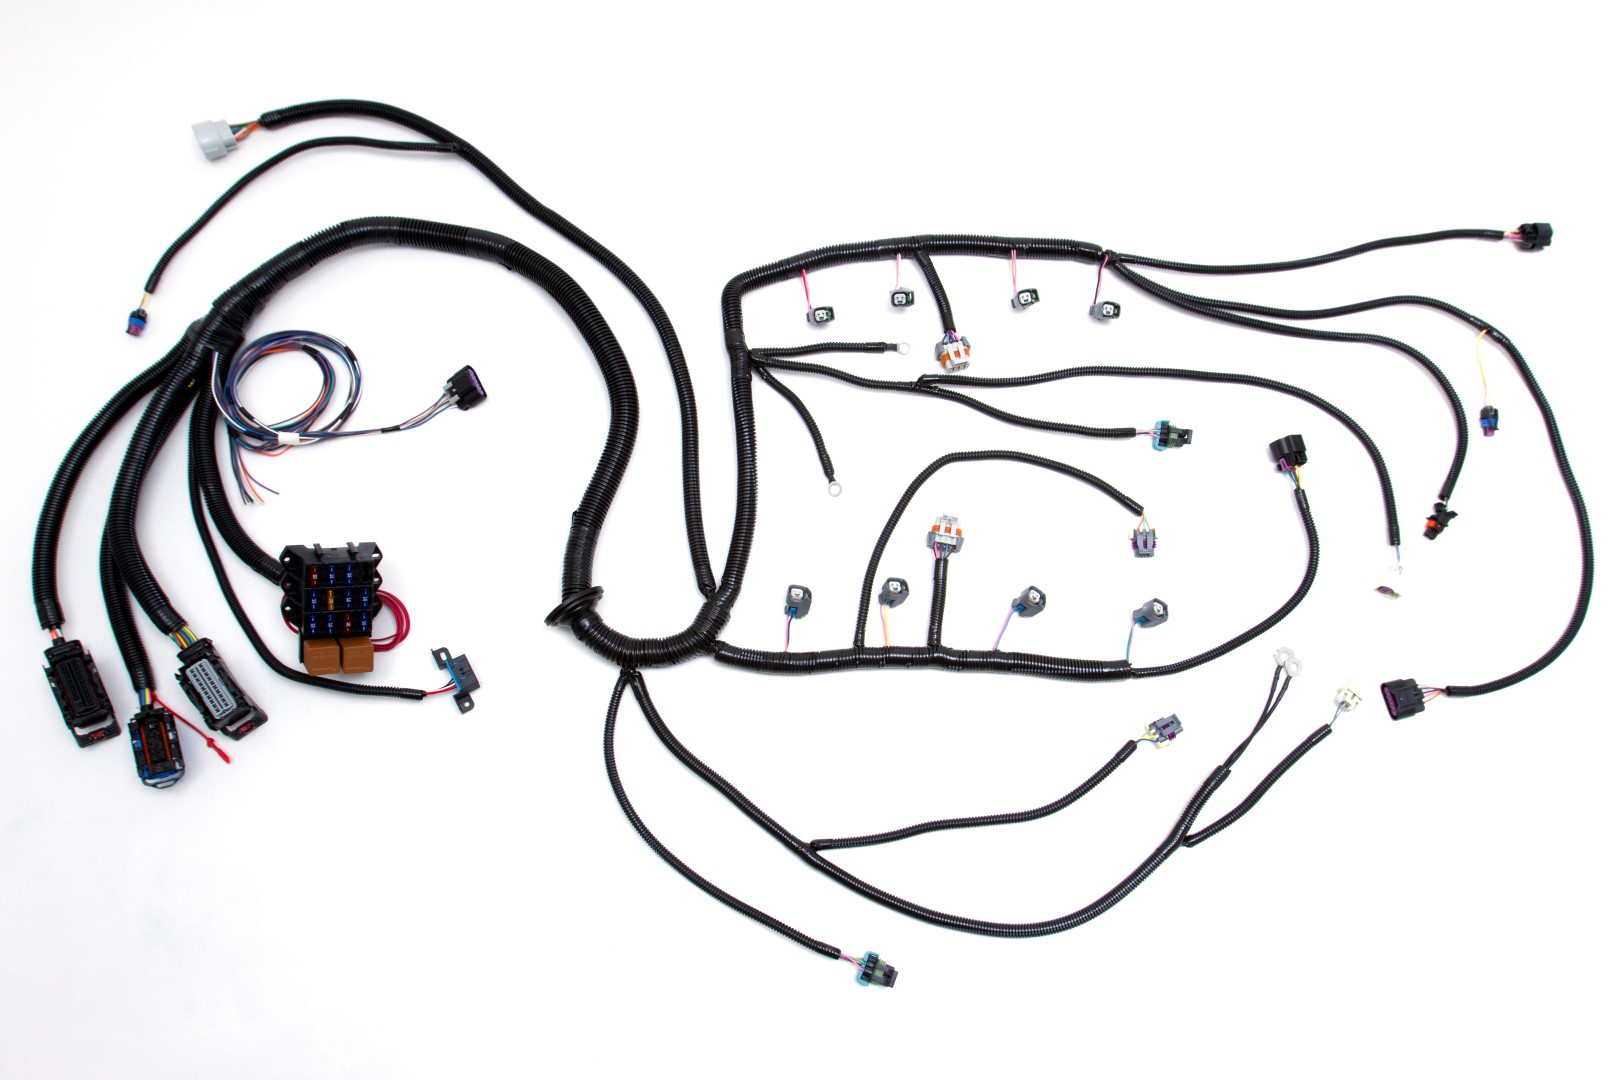 6B12569D615C960145AAE779D1051500 05 '07 ls2 (6 0l) 58x standalone wiring harness w 4l60e custom ls2 wiring harness conversion at readyjetset.co